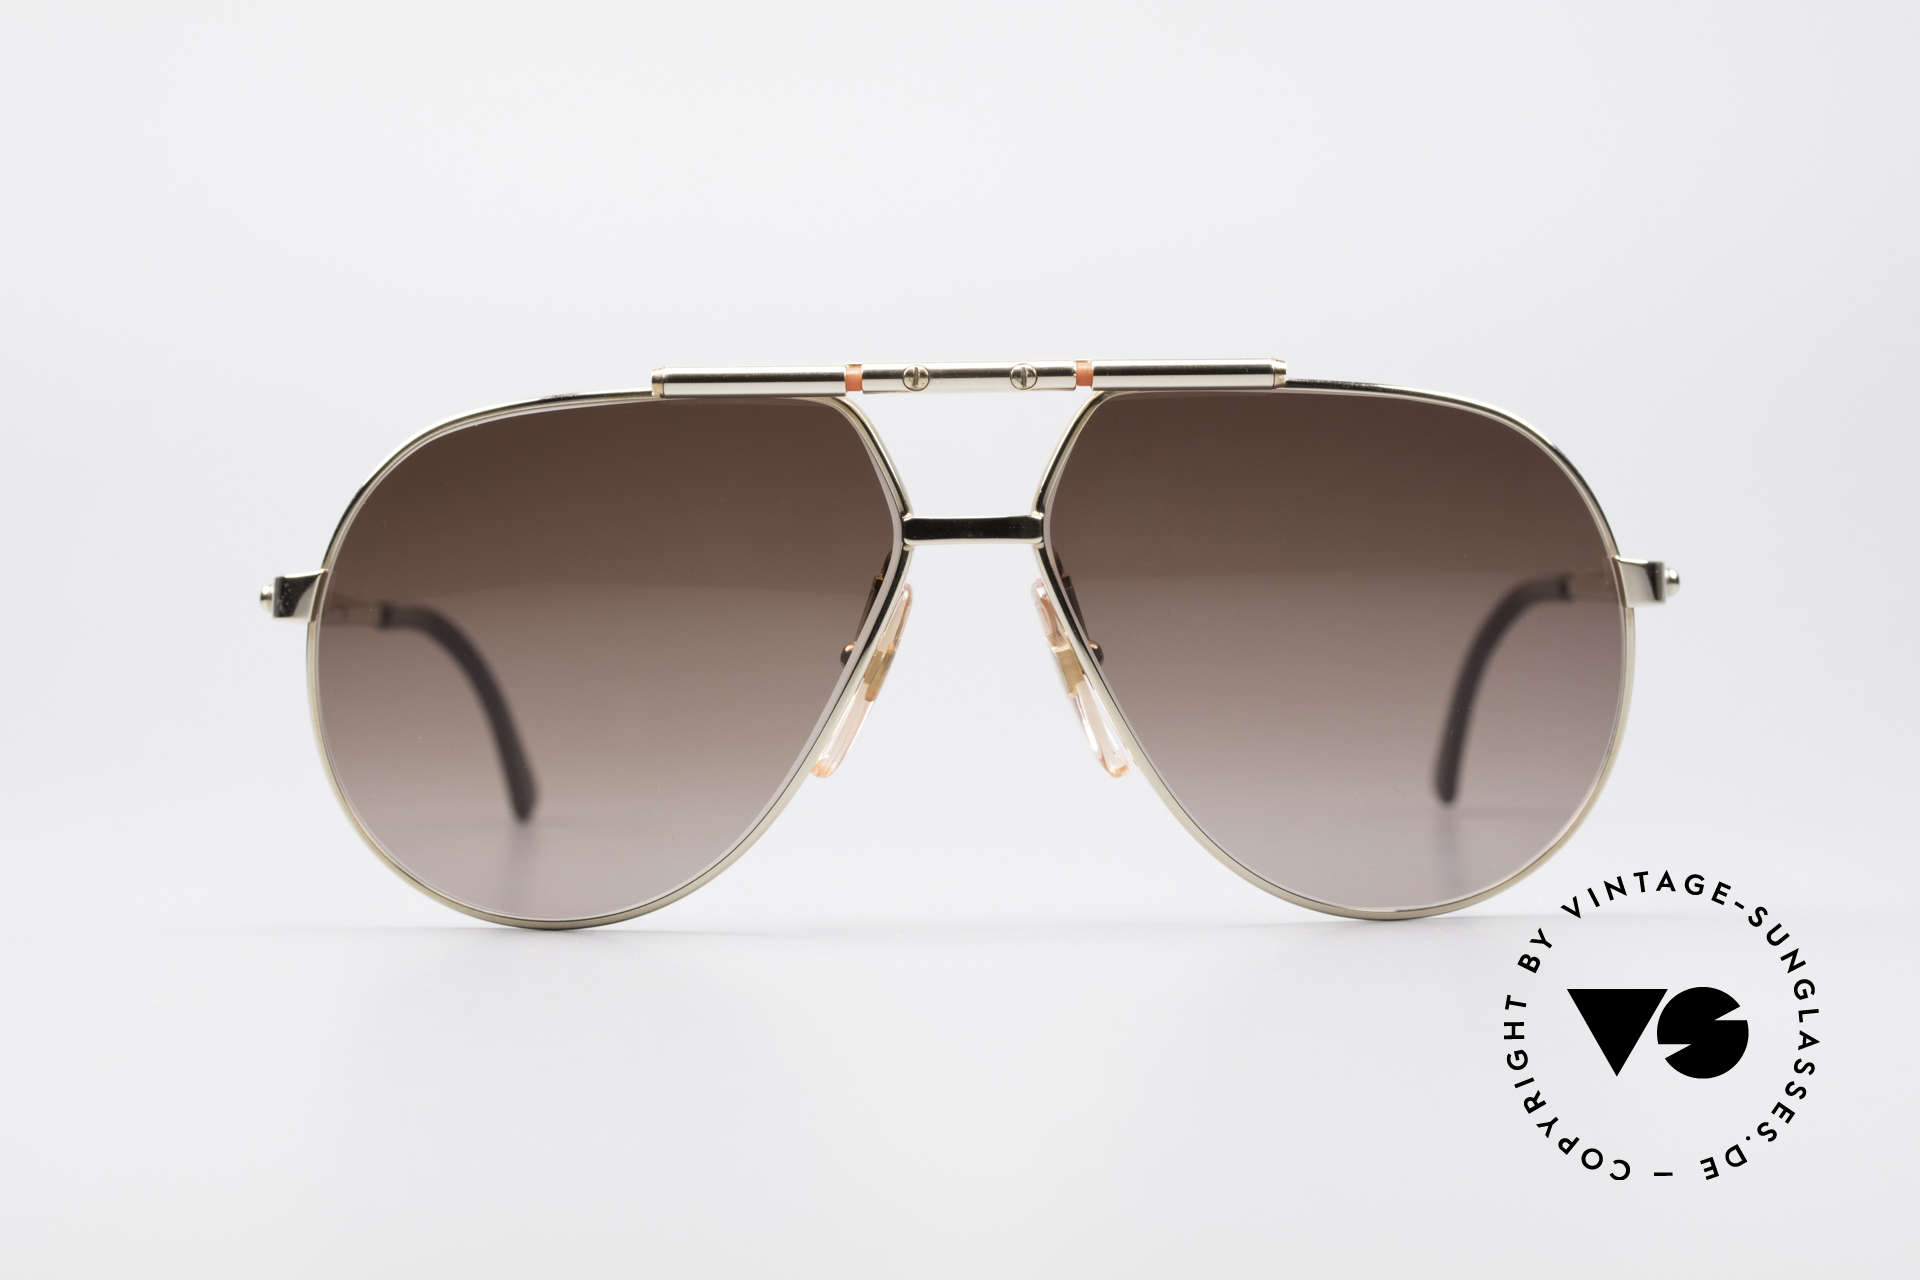 Boeing 5732 High Tech 80's Pilots Shades, made by Carrera only for the BOEING pilots needs, Made for Men and Women